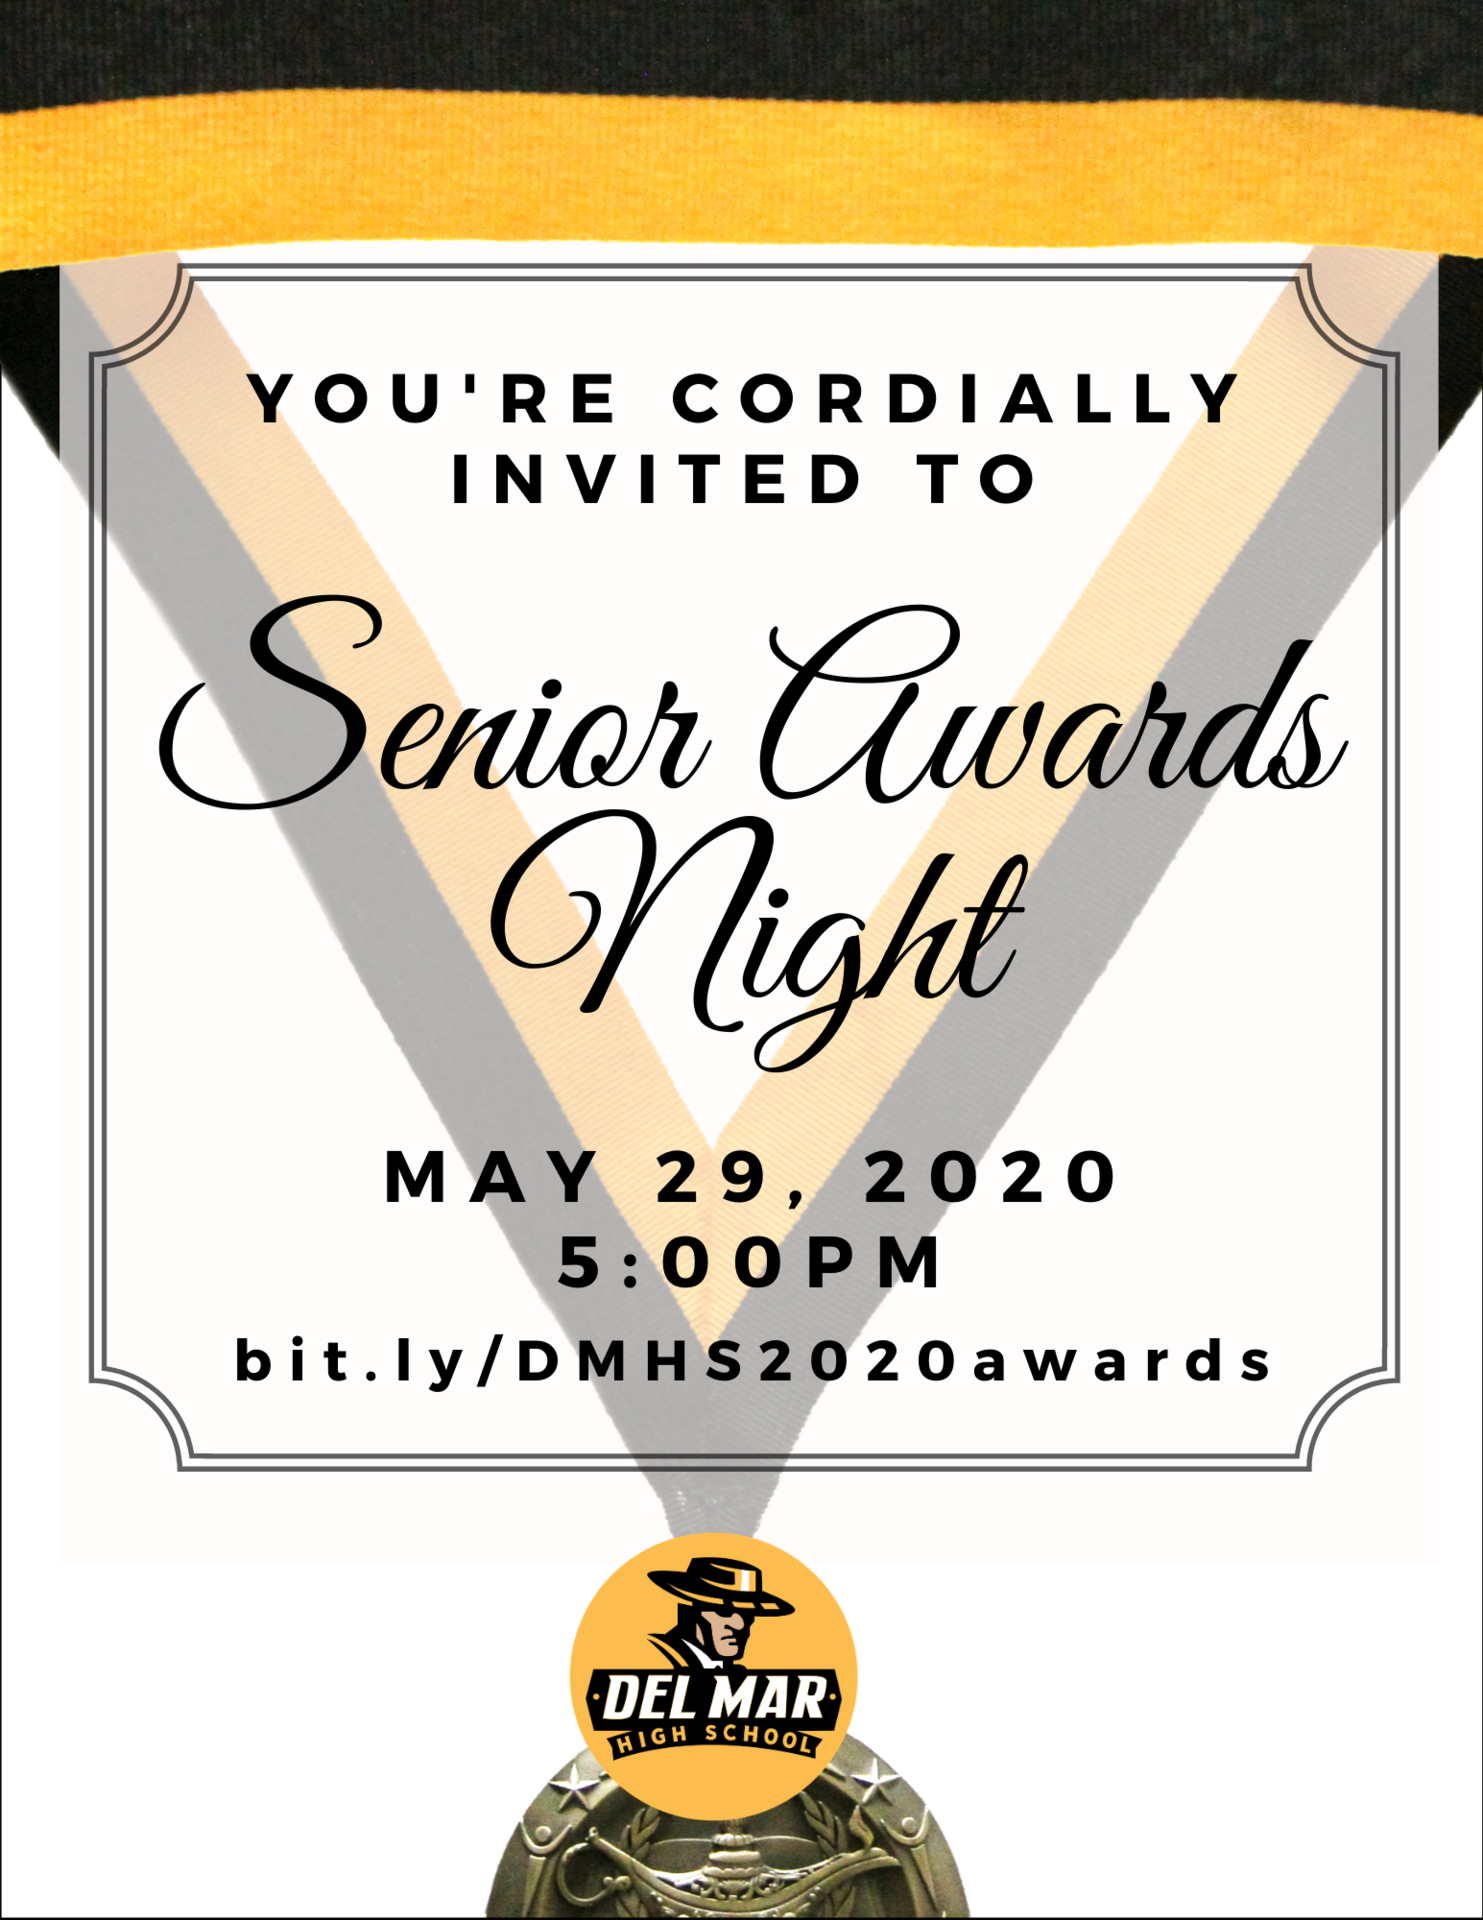 image of senior awards night invite